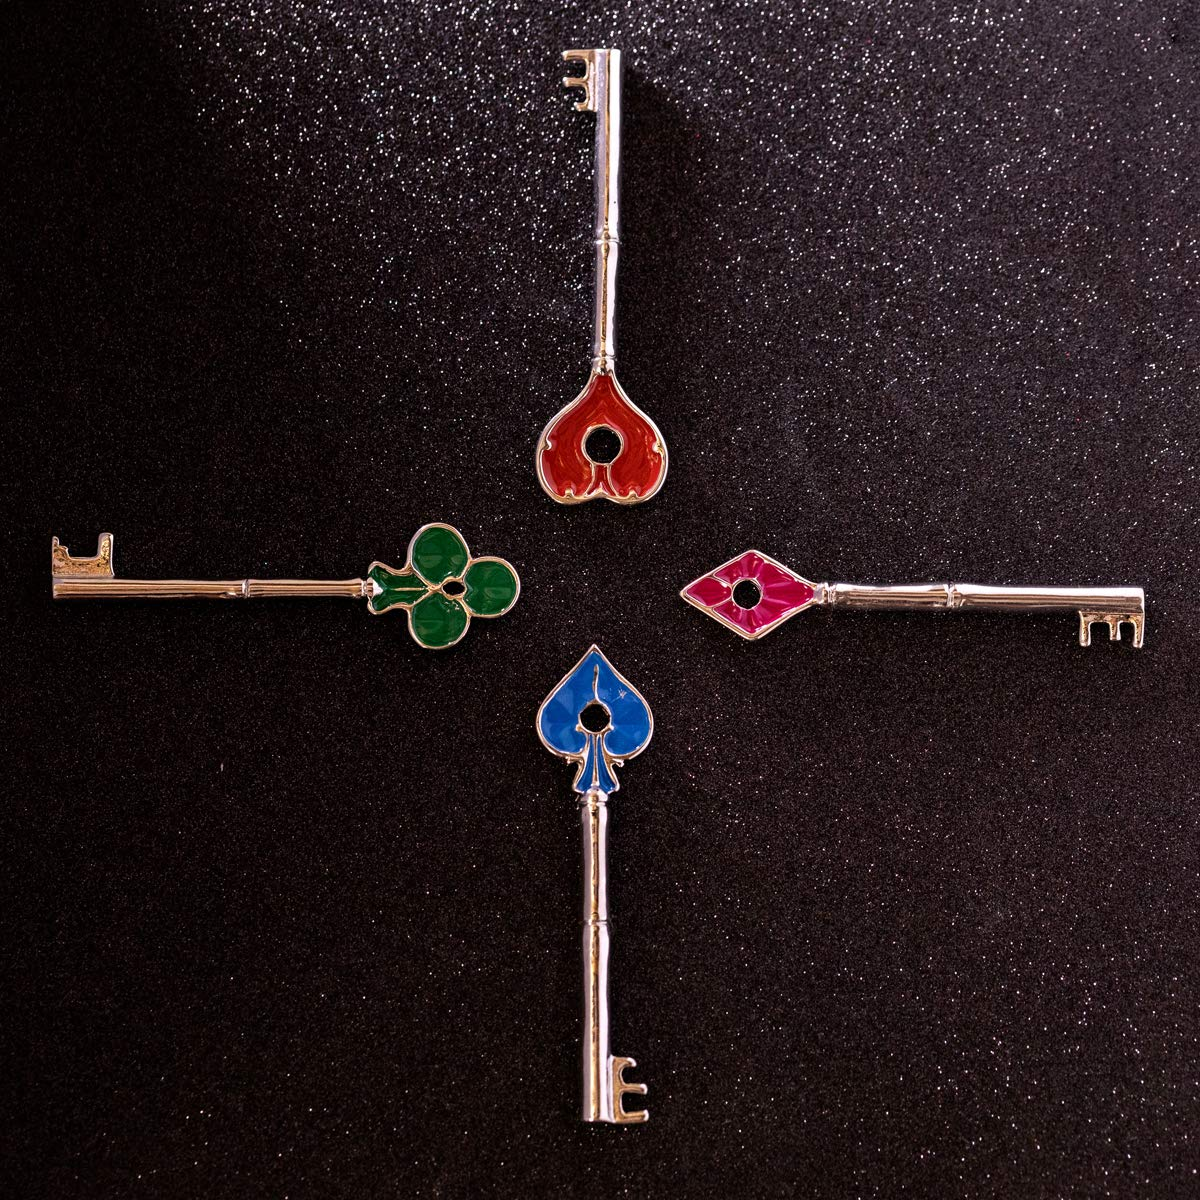 Resident Evil 2 Remake Keys Collection Set of 4 Pcs Zinc Alloy Keychain RPD Necklace Pendant Cosplay Costume Accessories